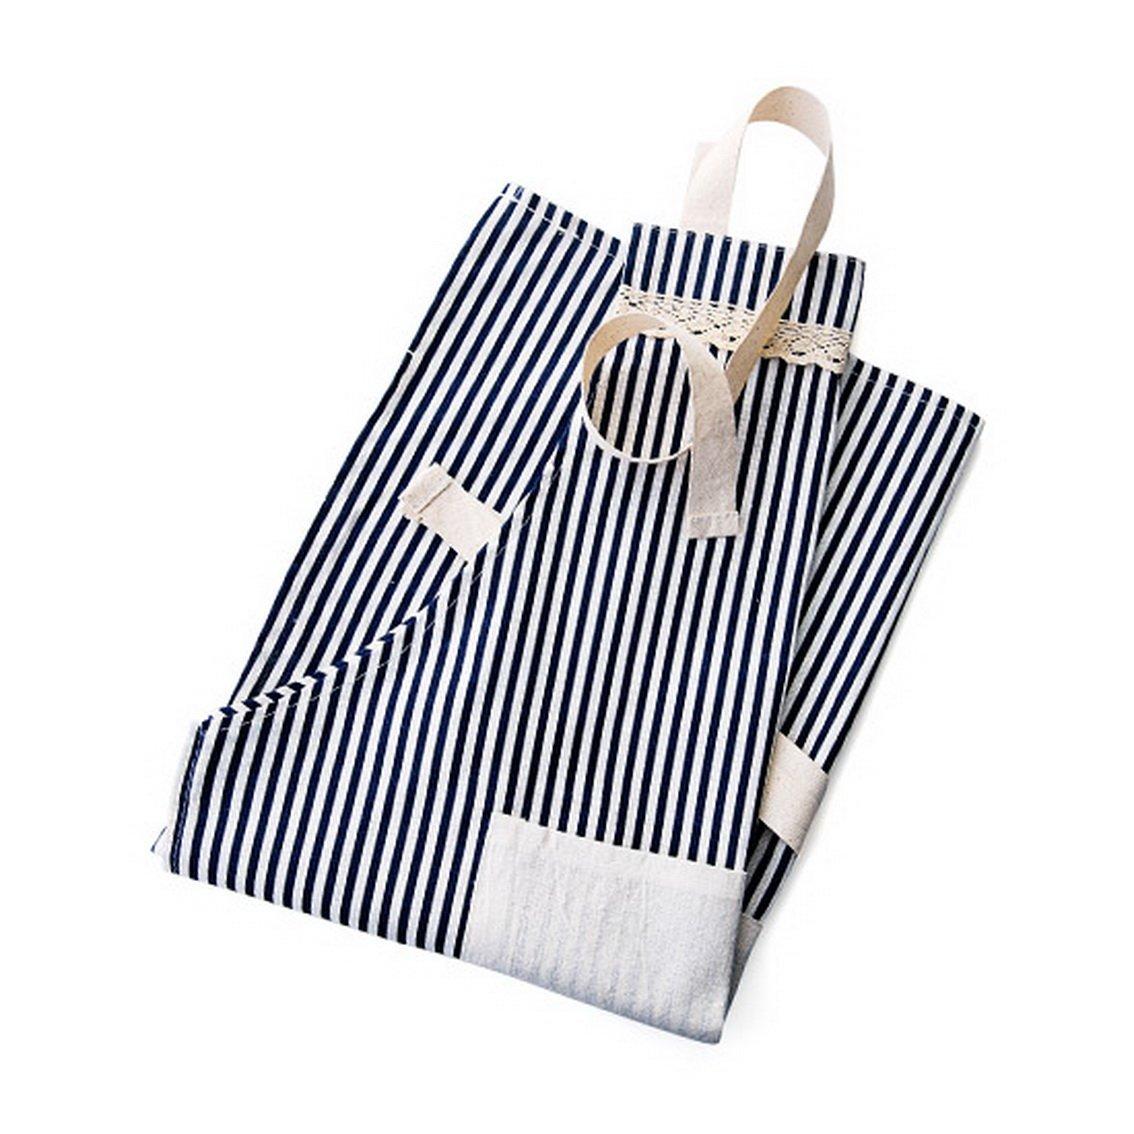 fengg2030shann Cotton aprons stylish simplicity kitchen cooking apron adult household sleeve gowns. Aprons apron aprons Sleeve gowns aprons gowns